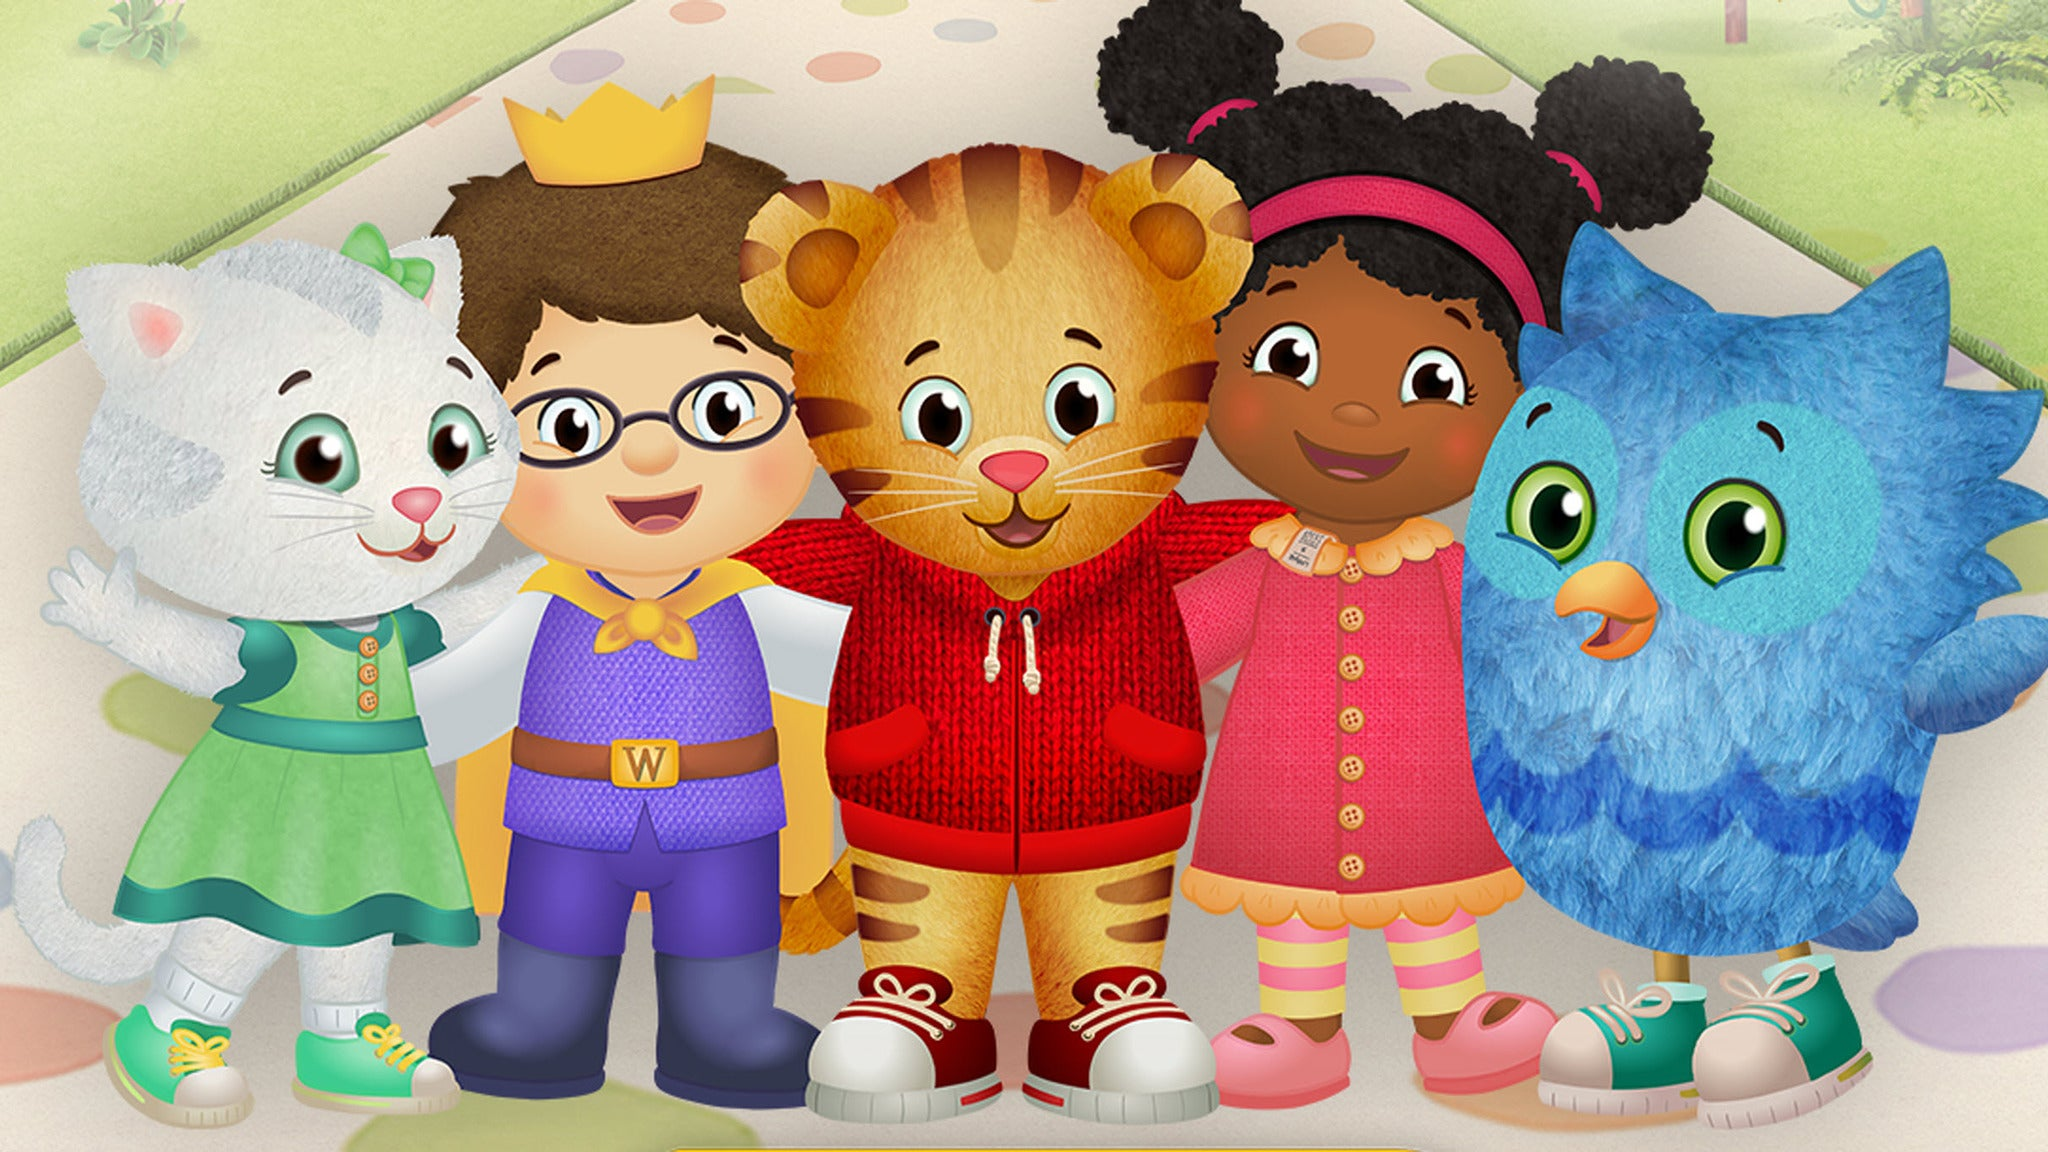 Daniel Tiger's Neighborhood at Flint Center